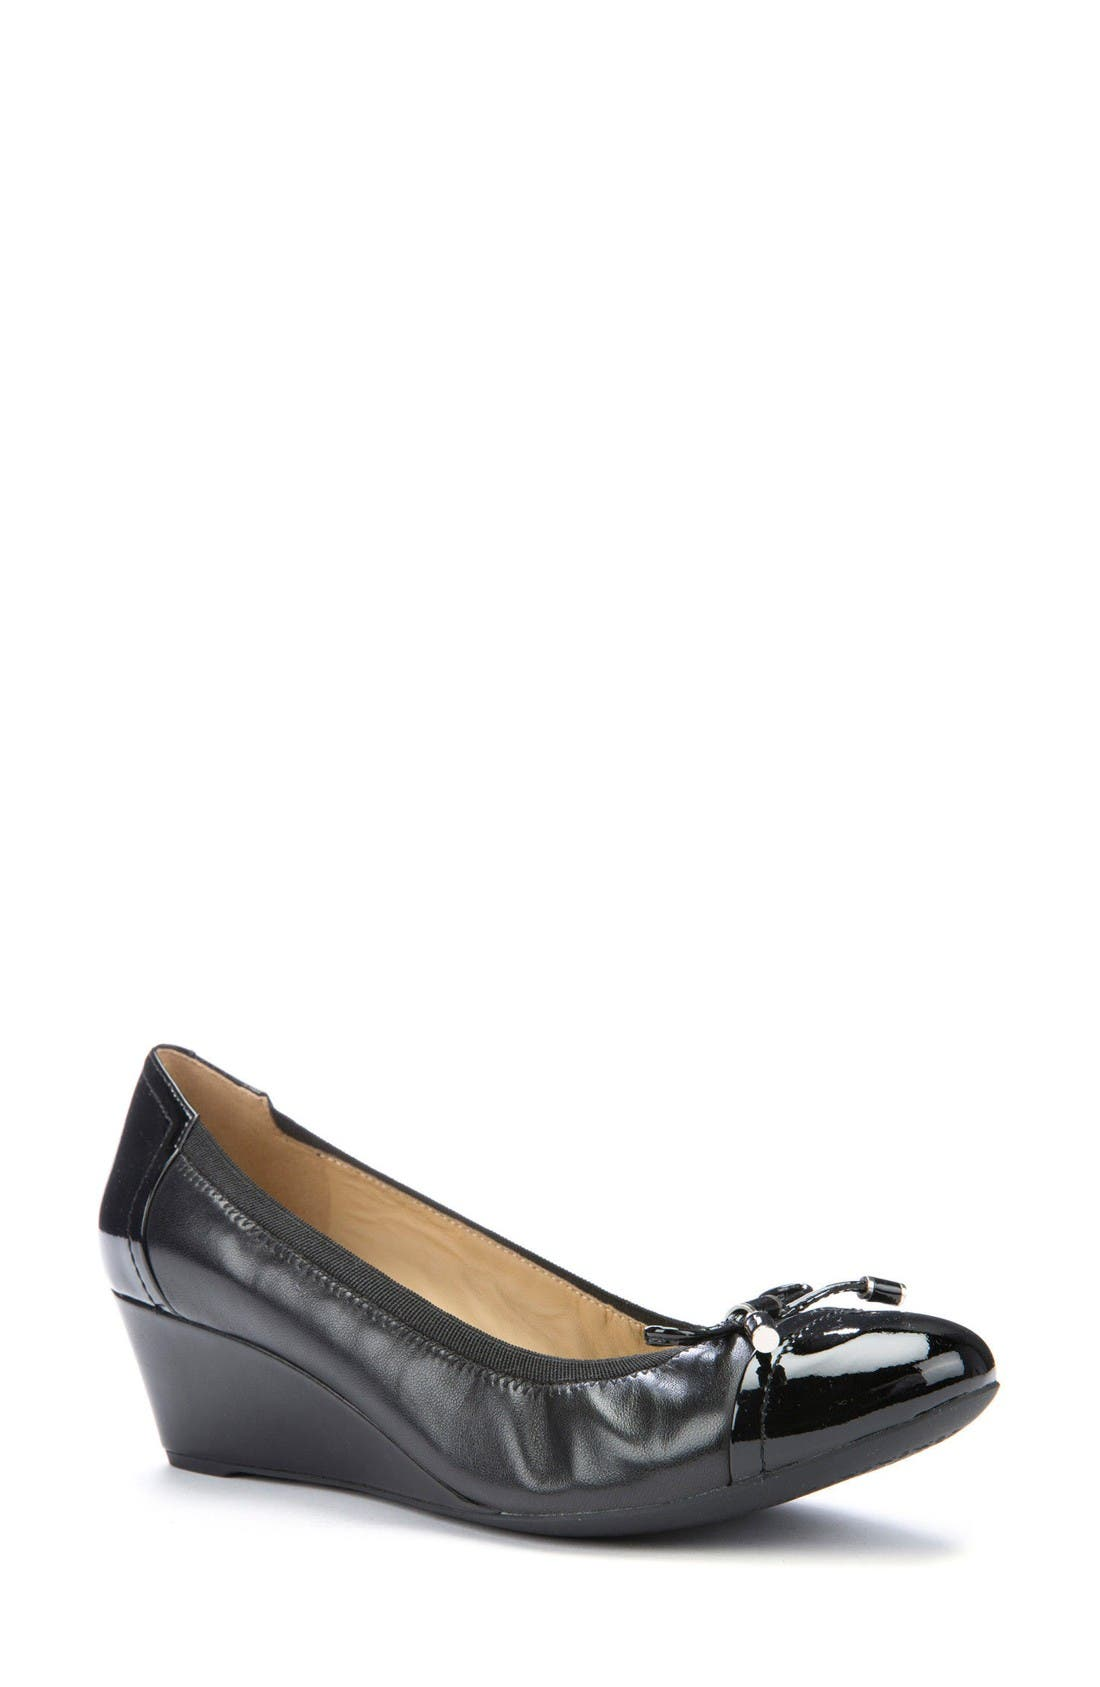 Main Image - Geox Floralie 17 Wedge Pump (Women)